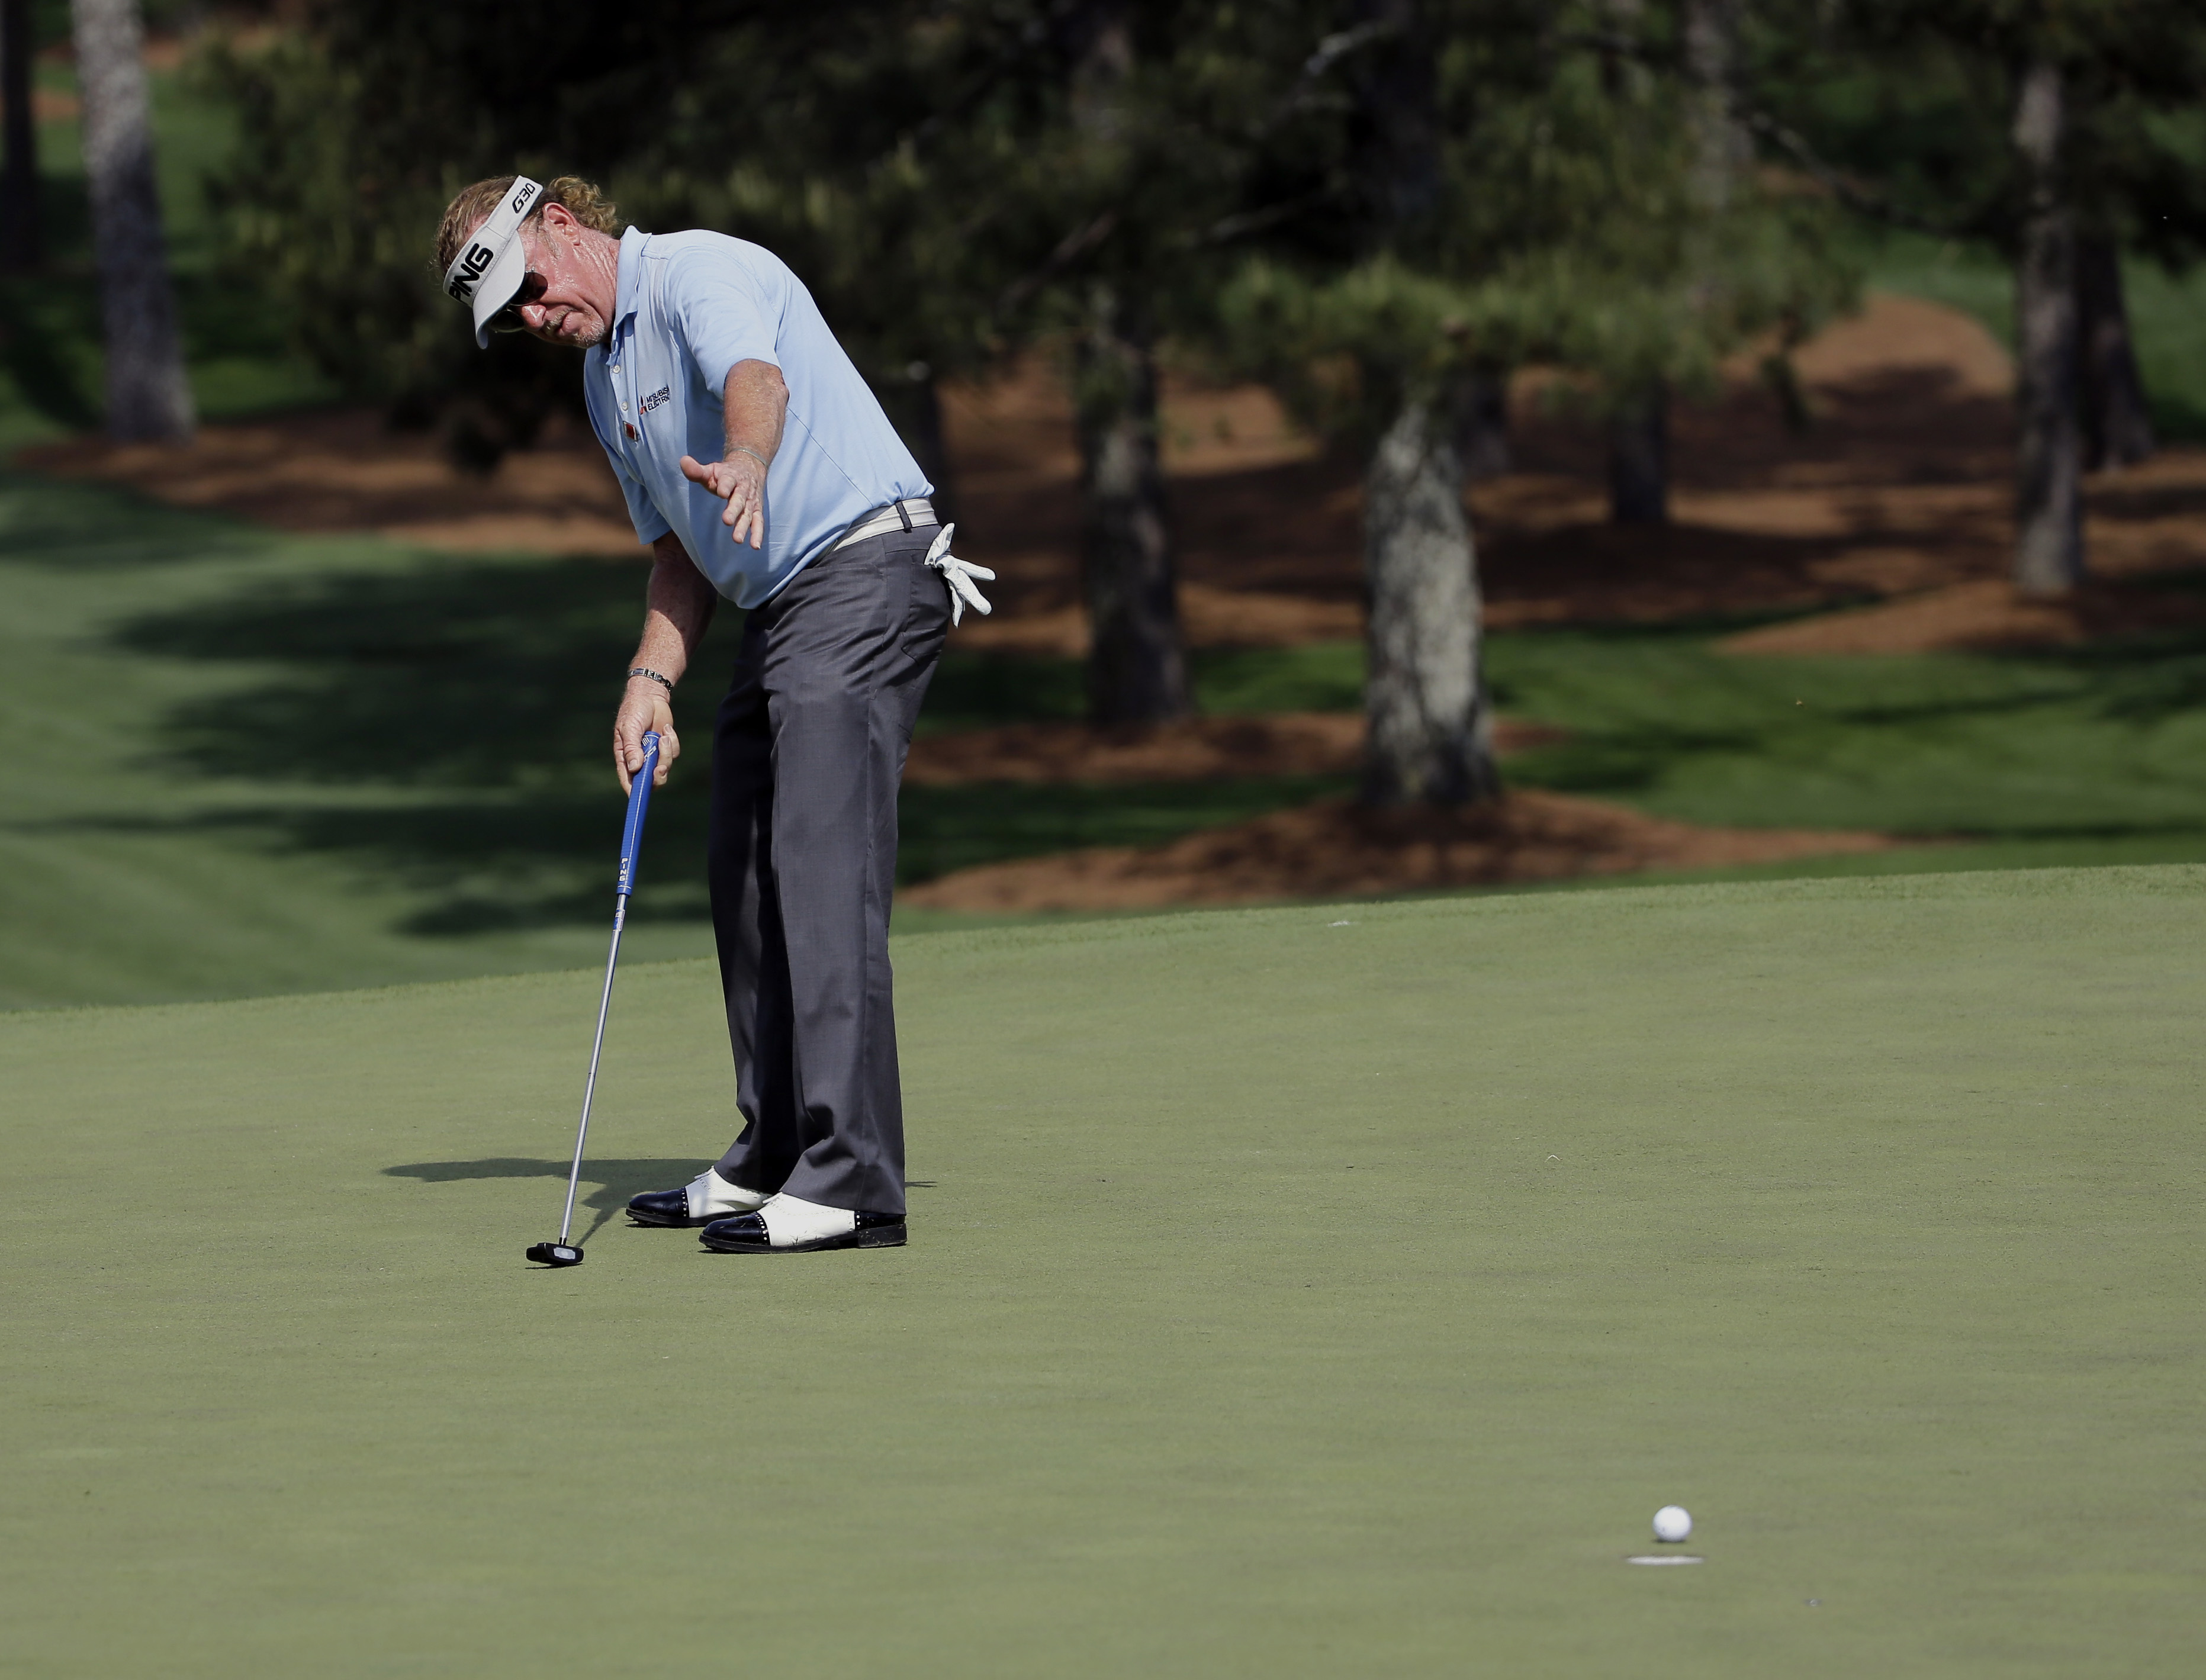 Miguel Angel Jimenez, of Spain, reacts to a missed birdie on the seventh green during the first round of the Masters golf tournament Thursday, April 9, 2015, in Augusta, Ga. (AP Photo/David J. Phillip)